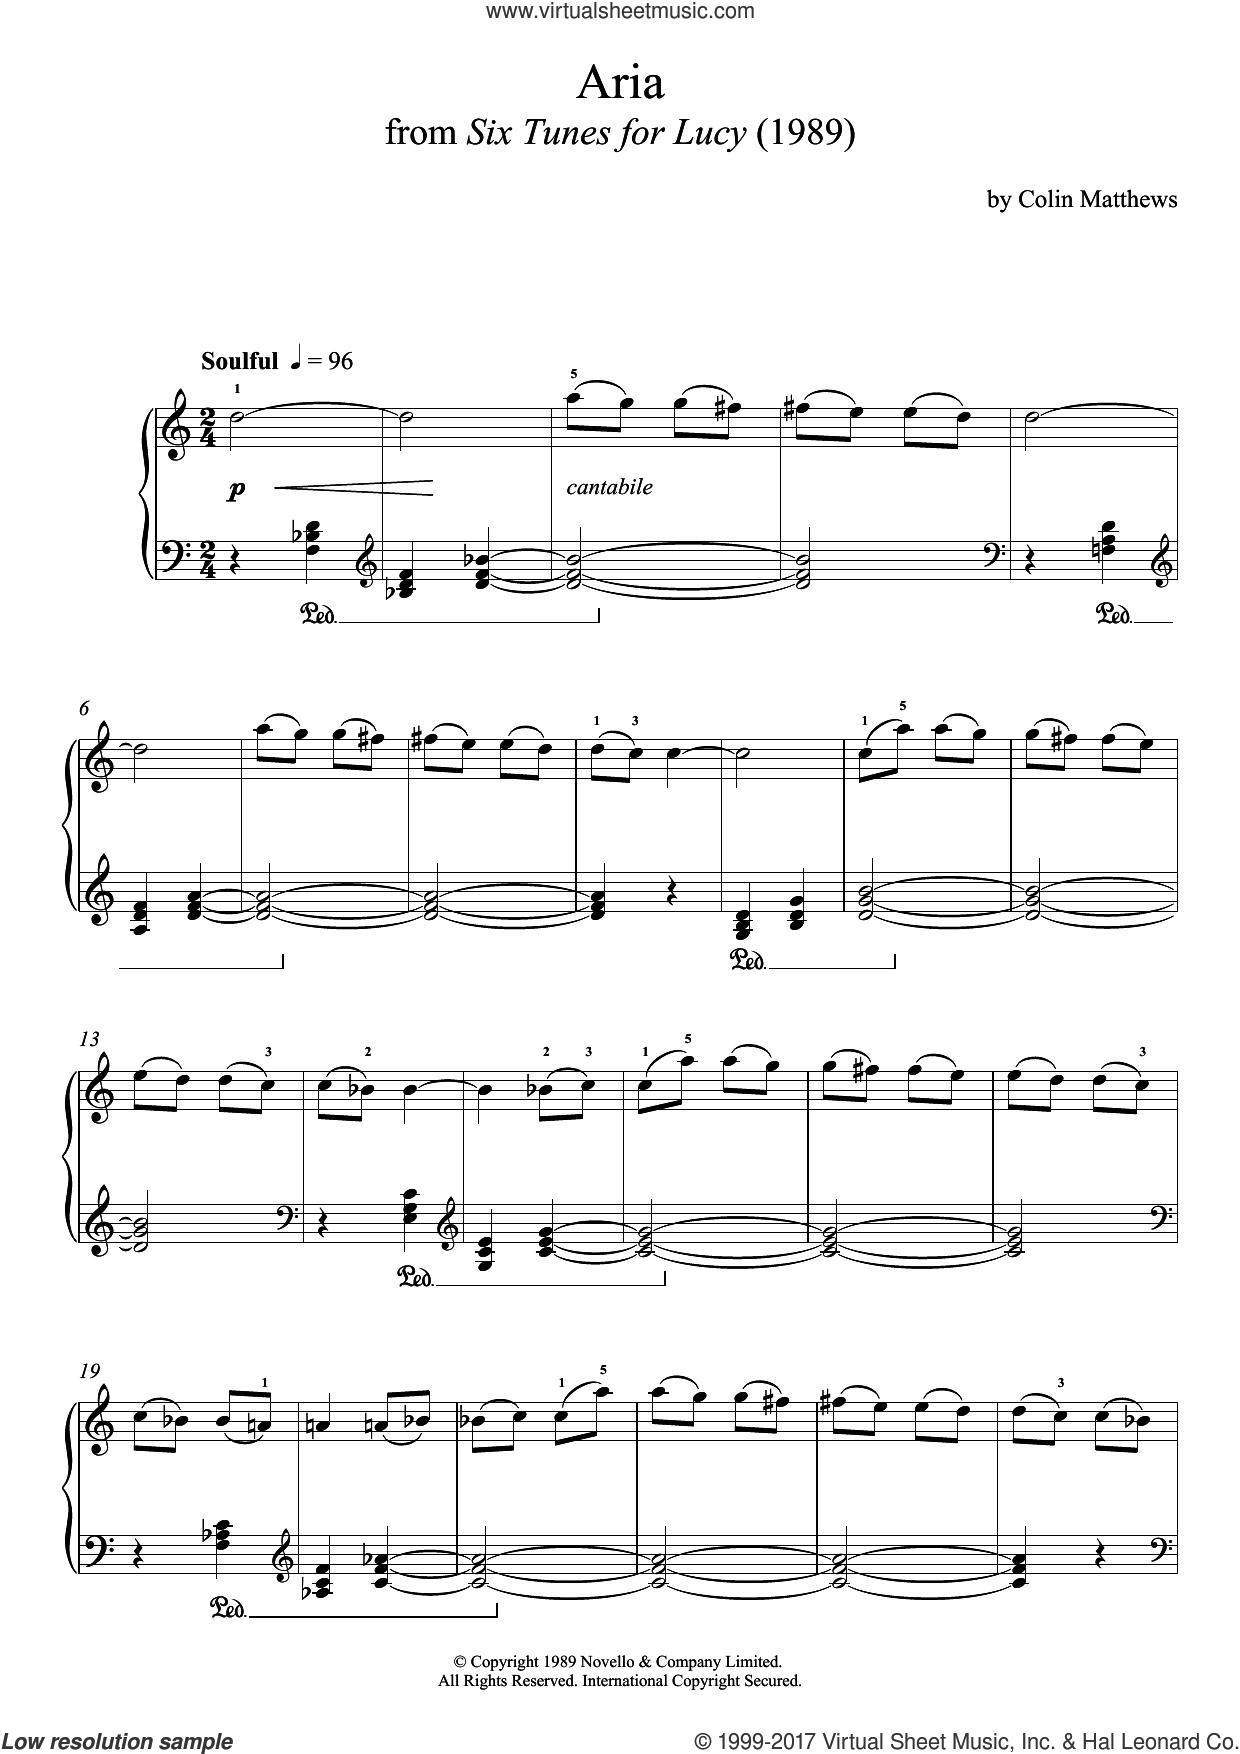 Aria (From Six Tunes For Lucy) sheet music for piano solo by Colin Matthews, classical score, intermediate skill level